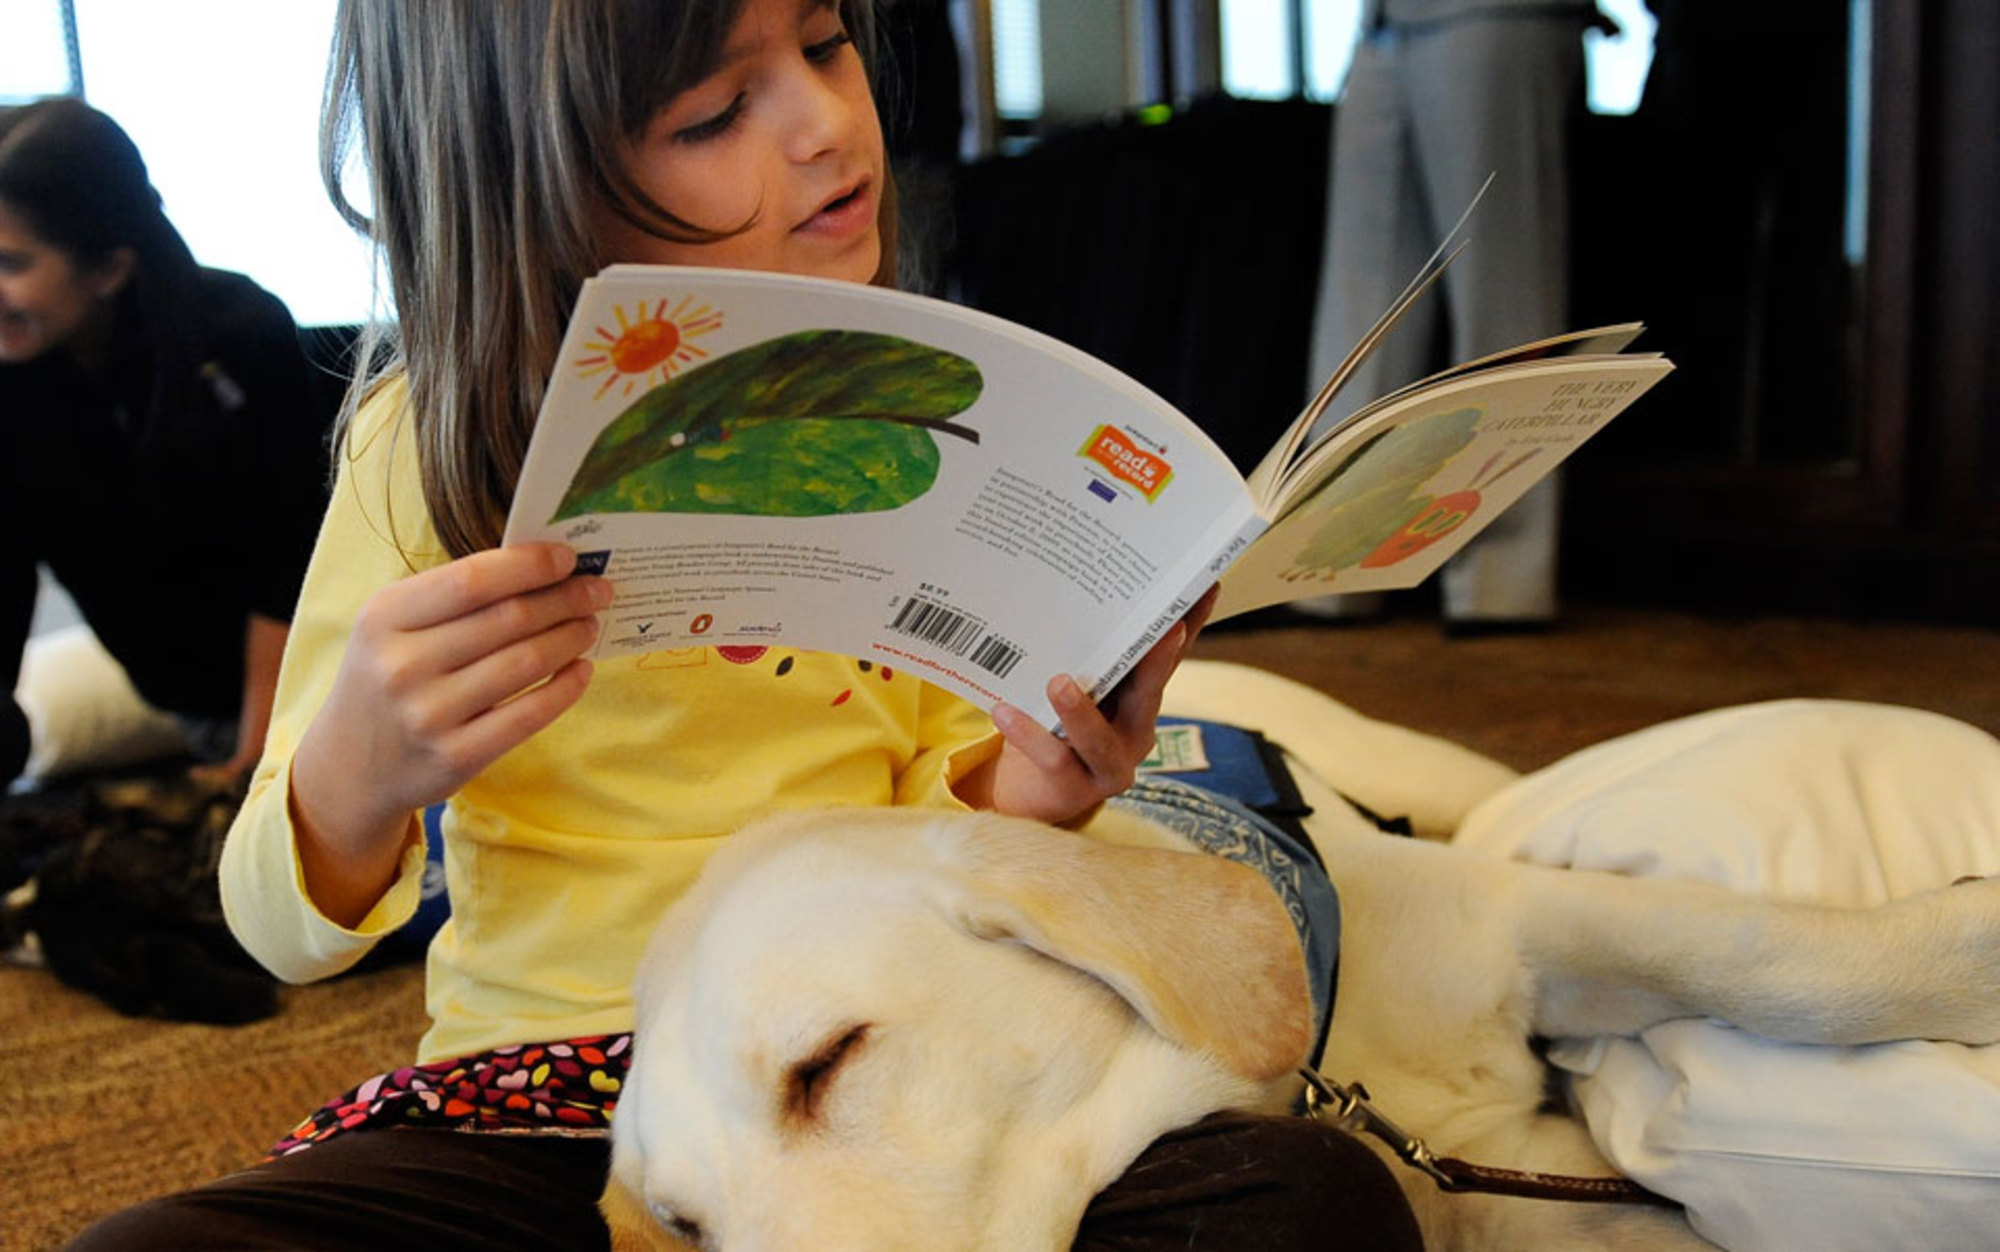 Let s get every child reading widely and well   Telegraph